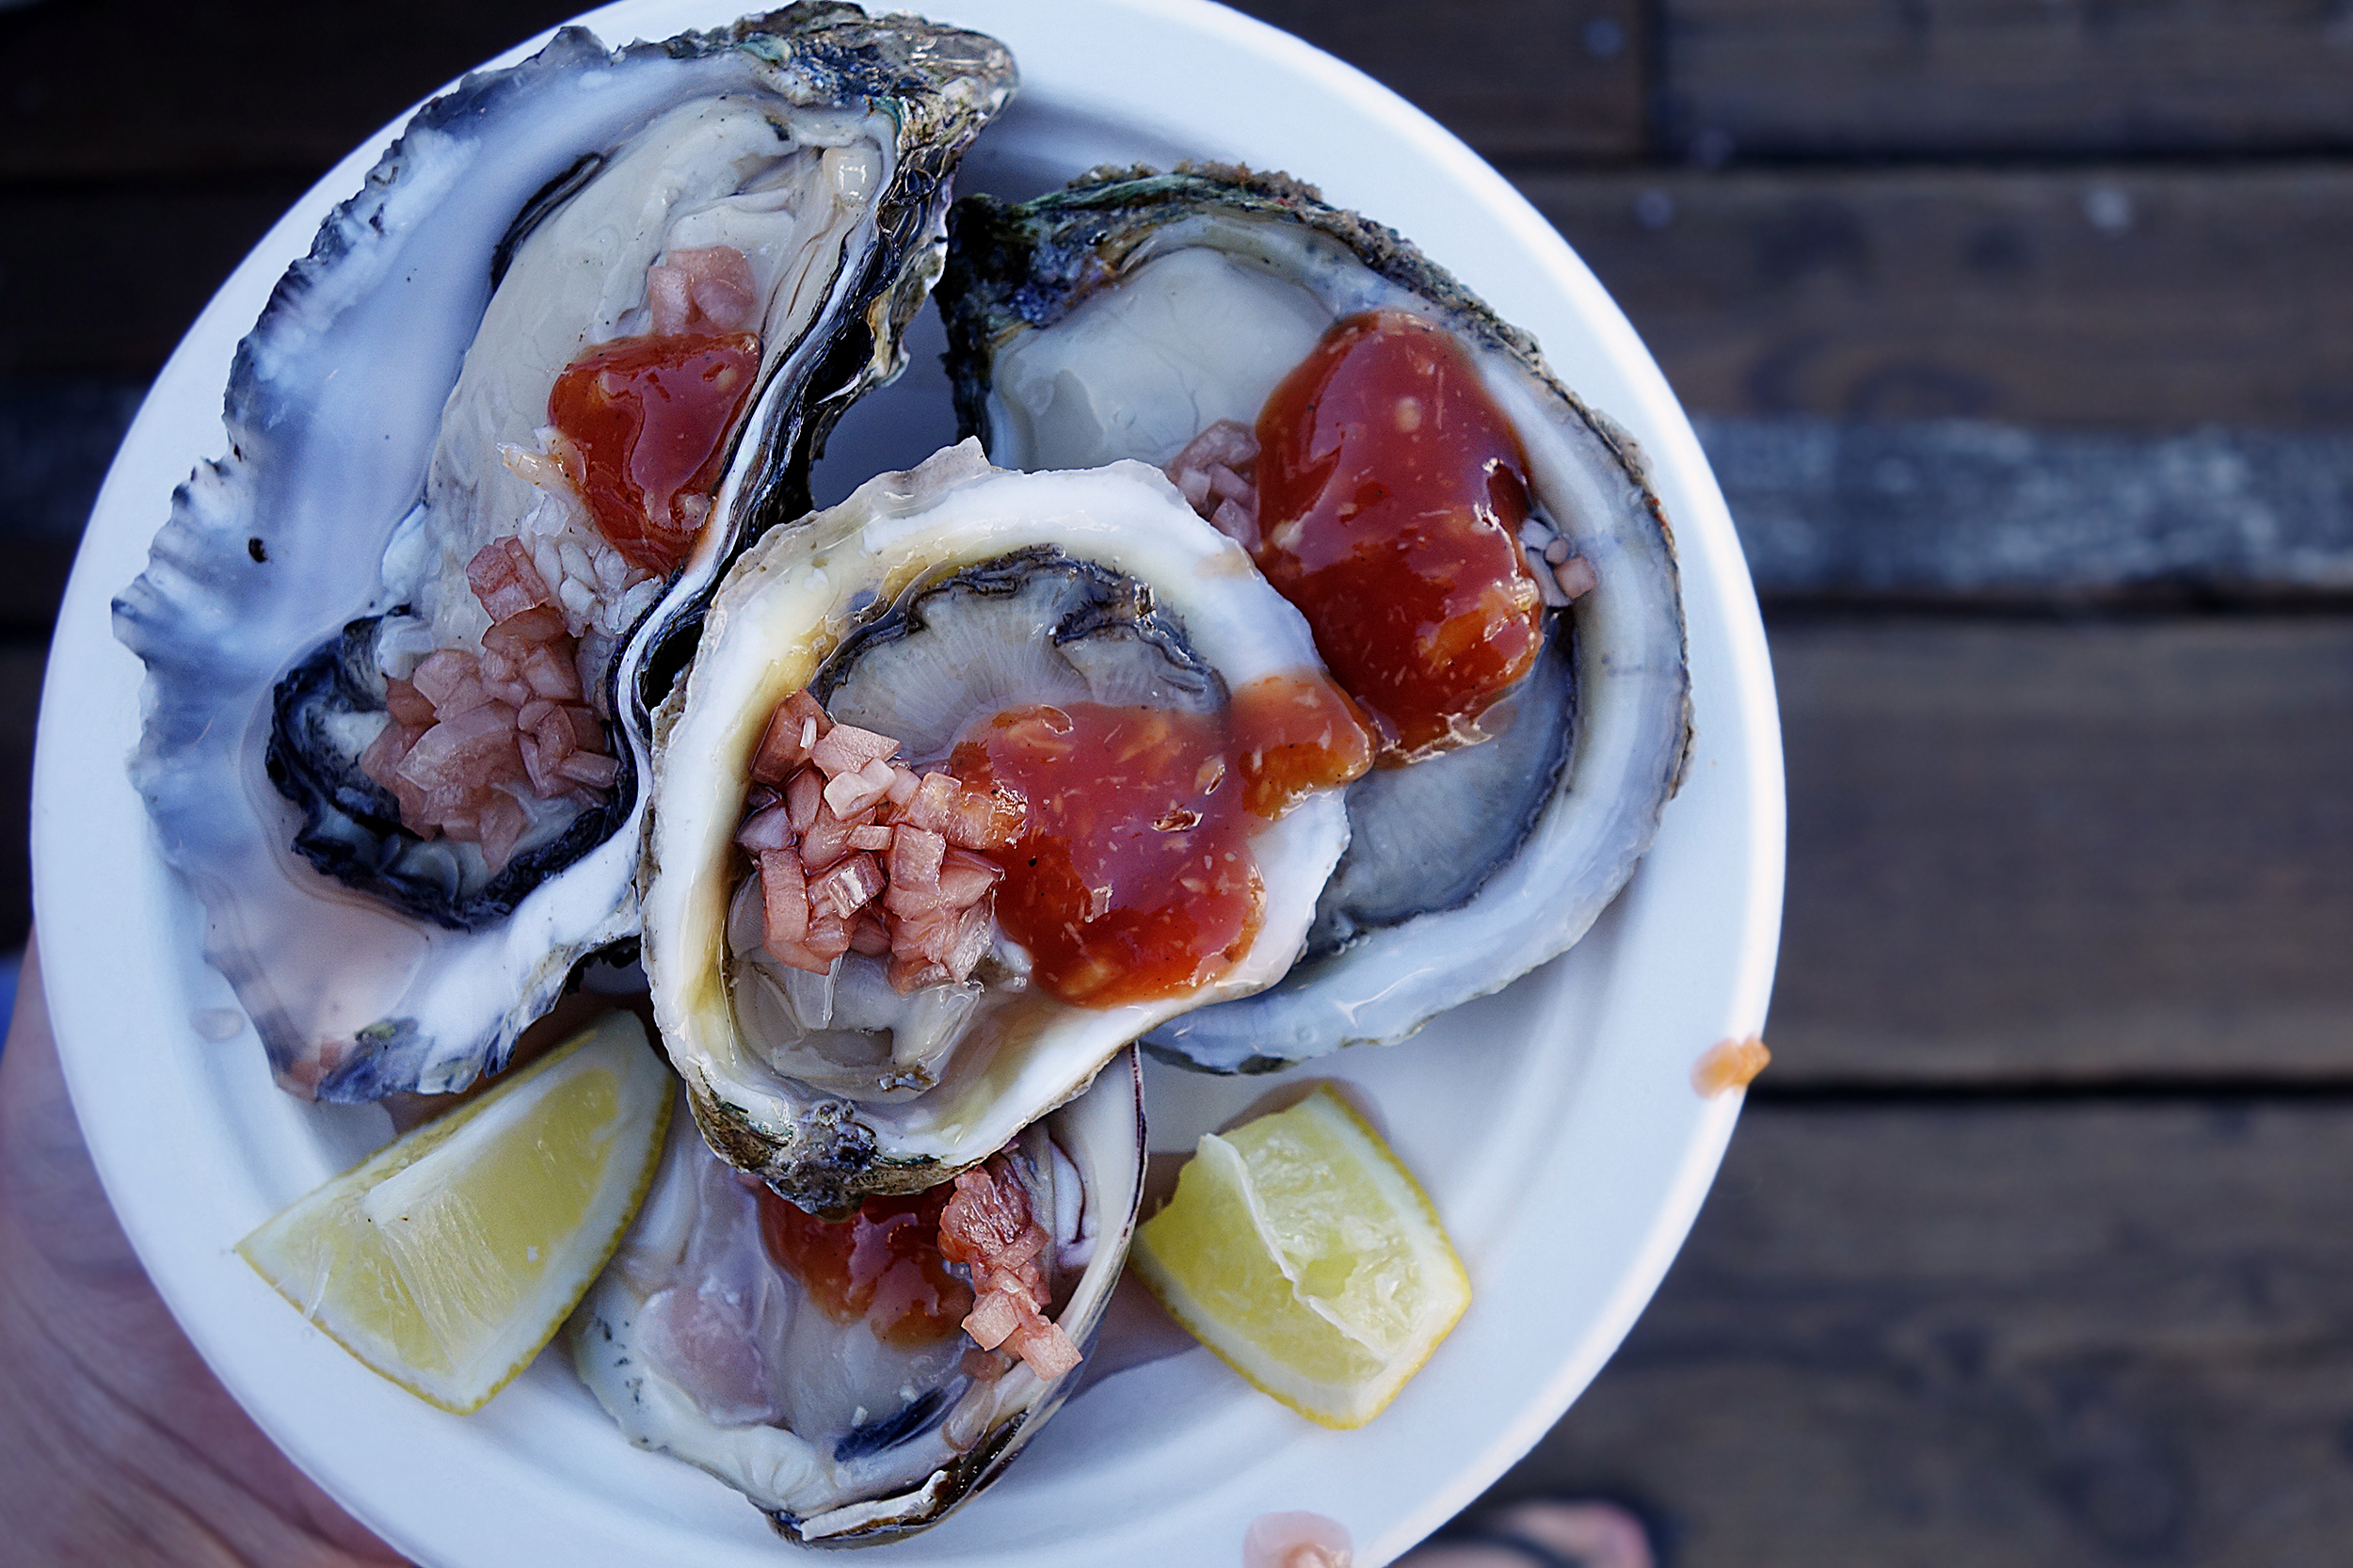 Best oysters I've ever had!